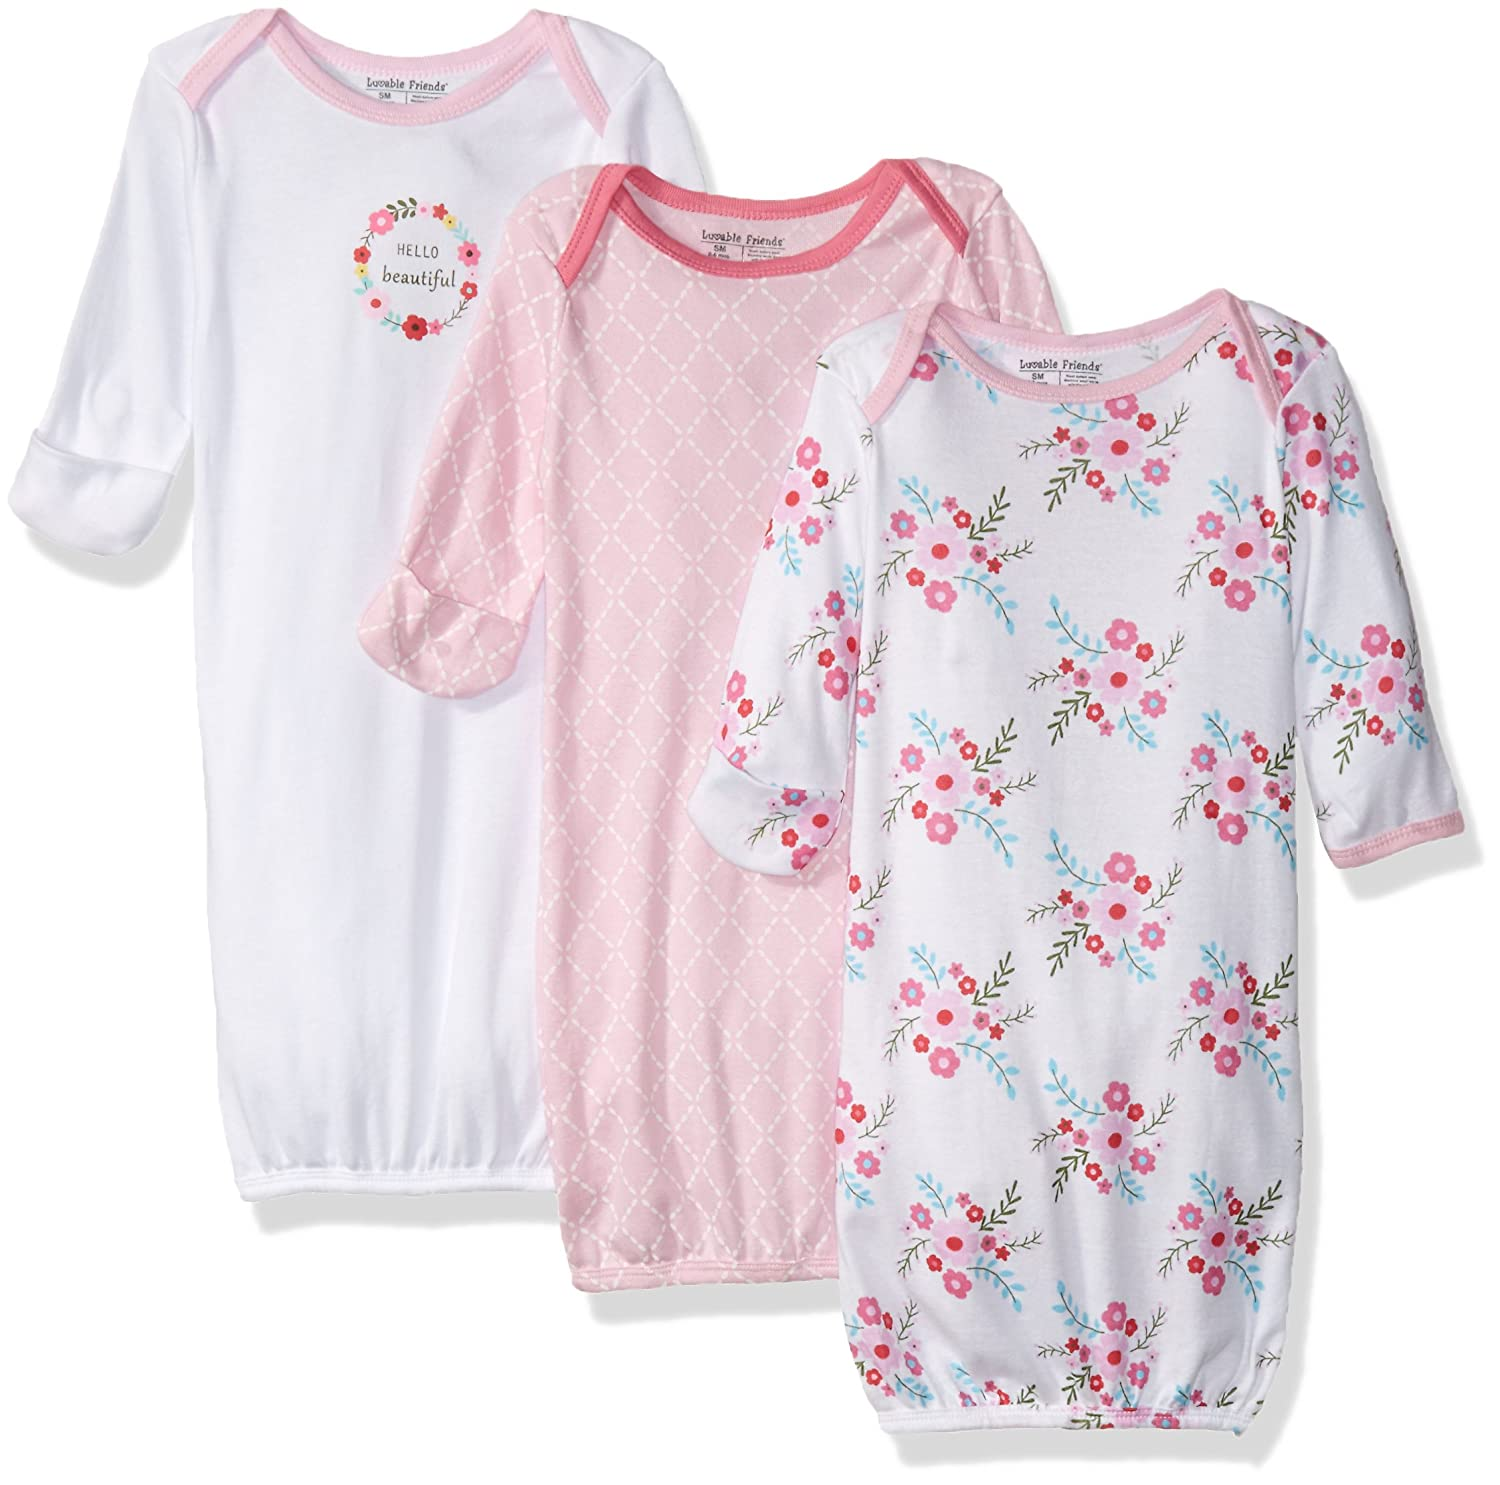 Luvable Friends Baby Girls' Gowns, 3 Pack Luvable Friends Baby Gowns Pink Bird 0-6 Months 33014